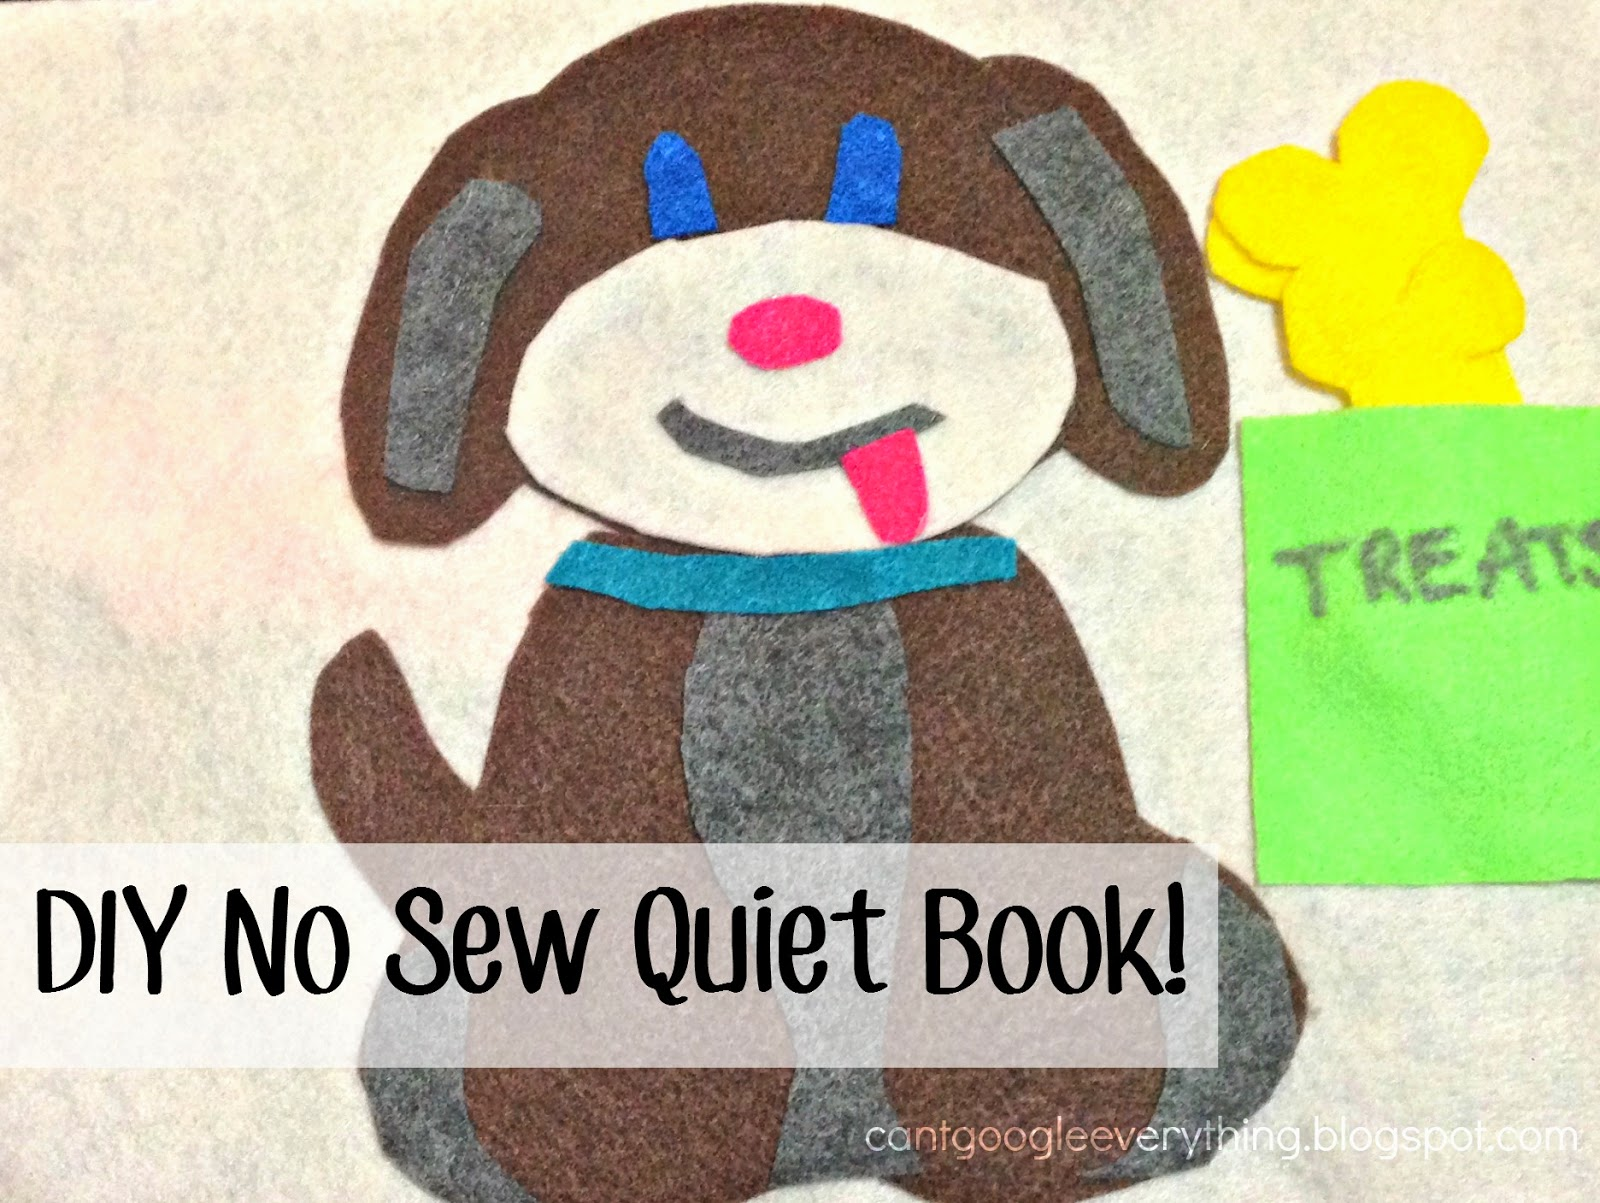 DIY No Sew Quiet Book Ideas!